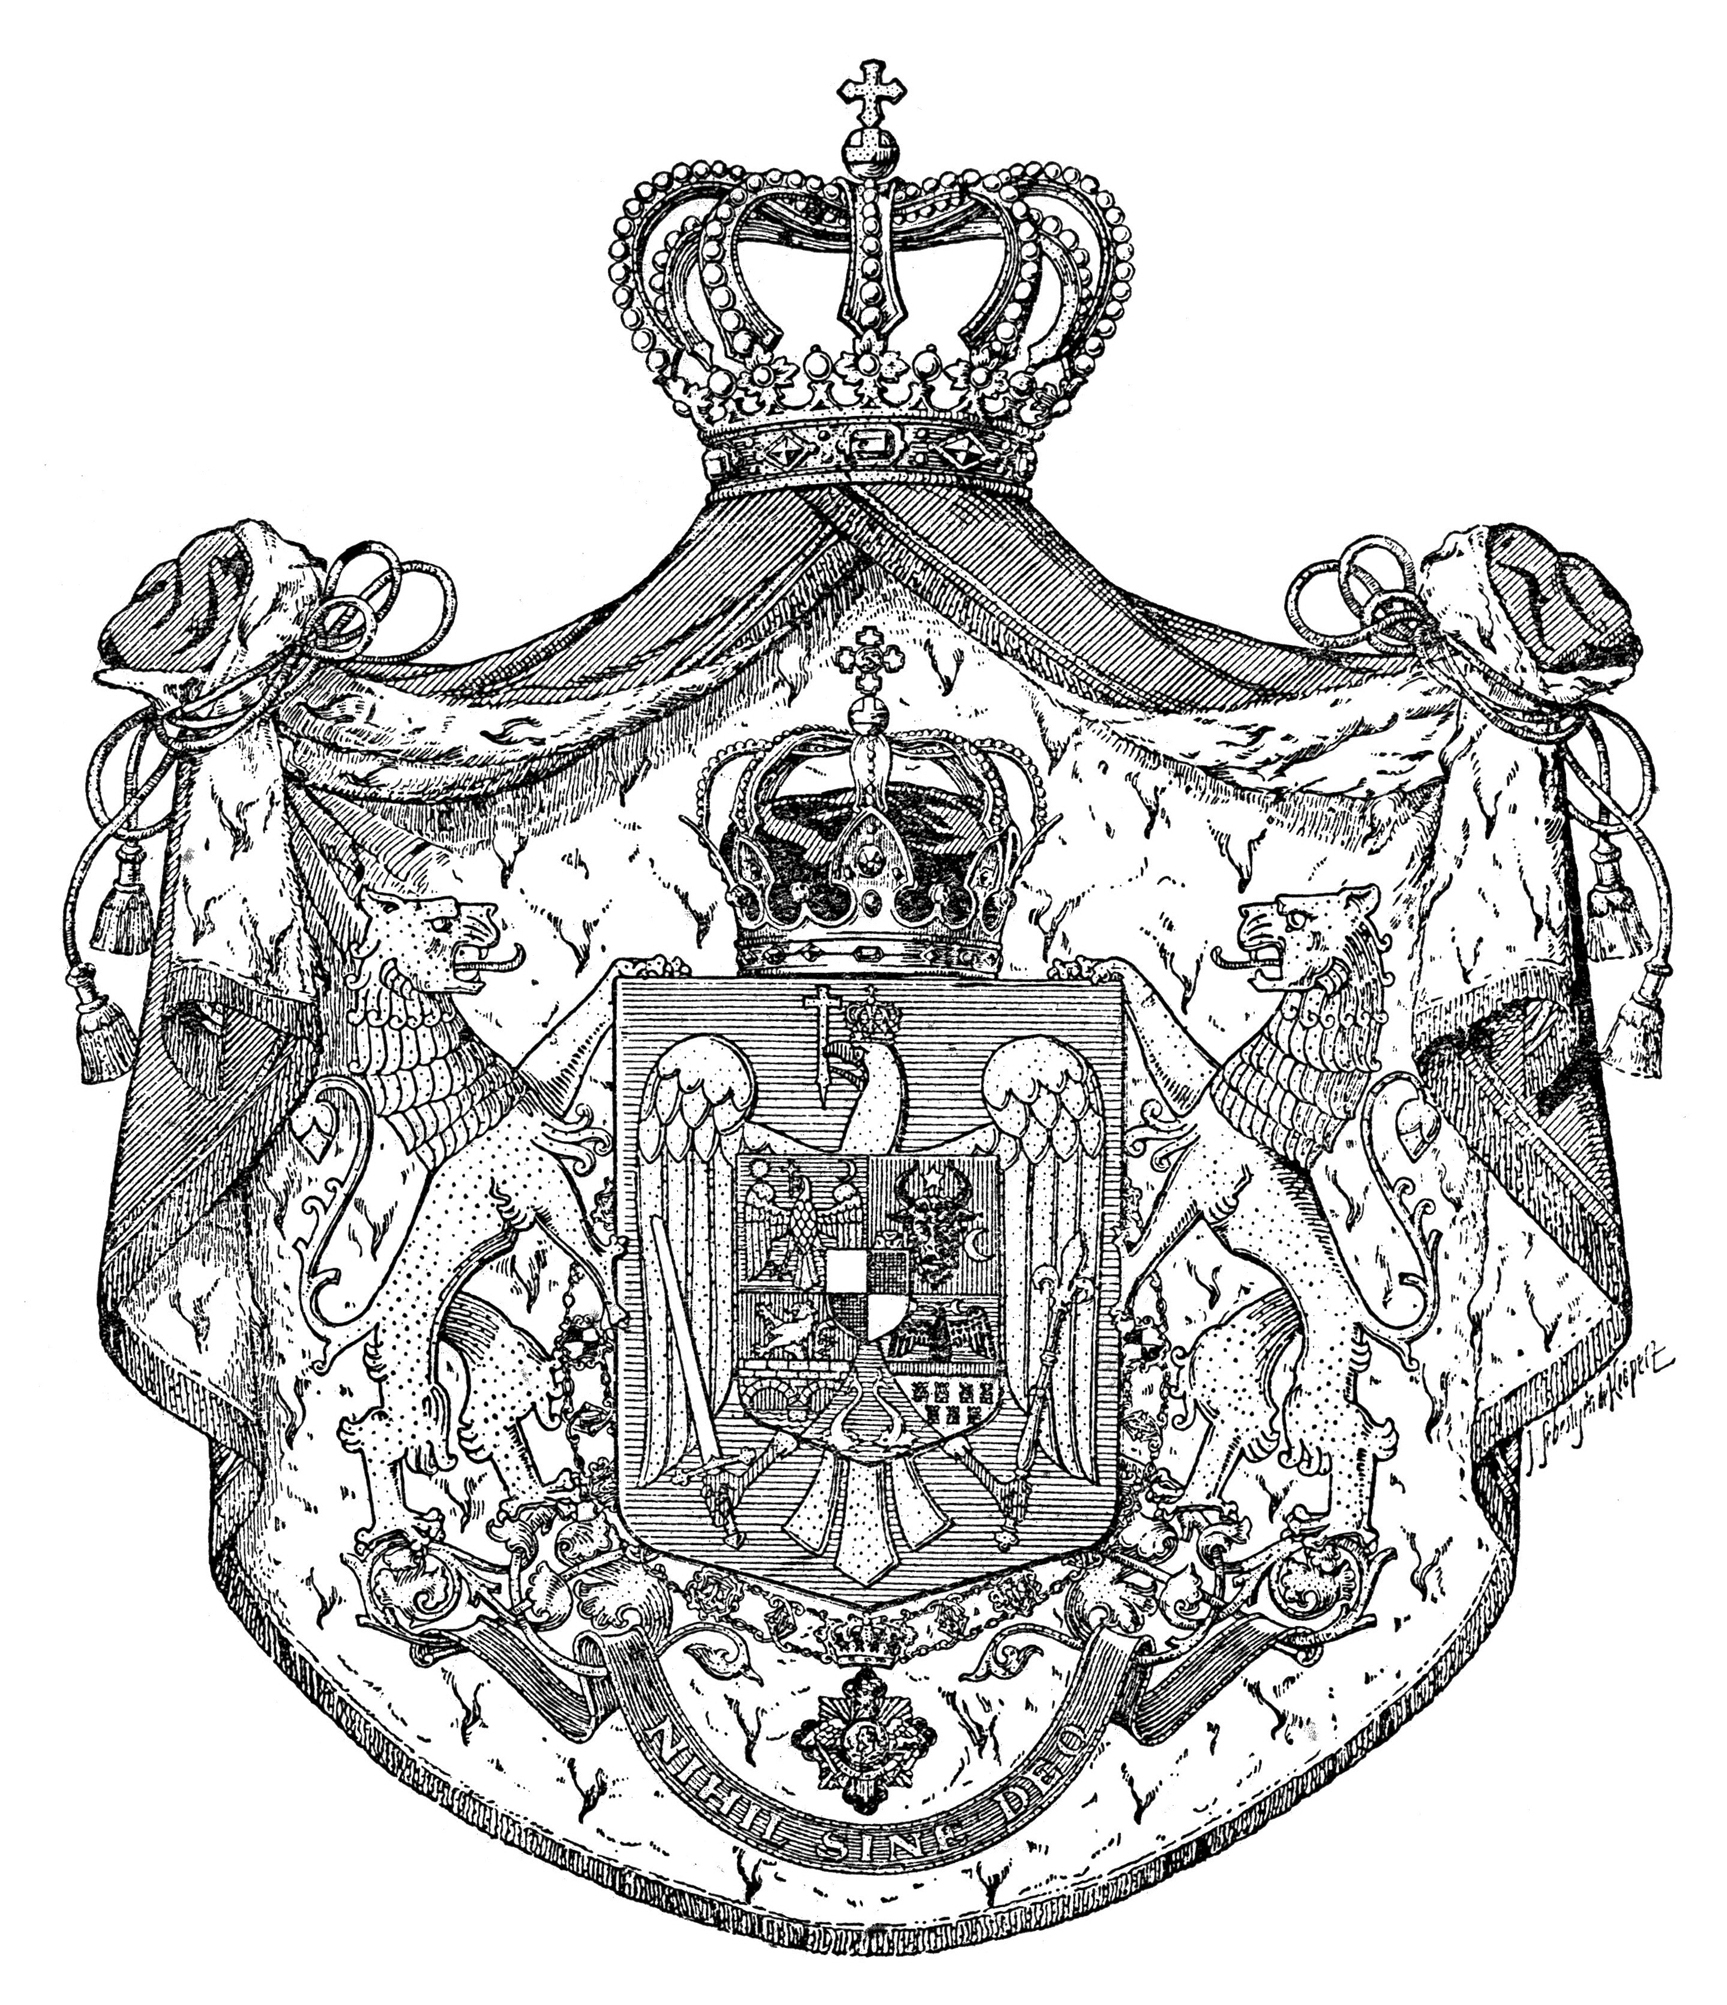 Enlarged Coat of Arms from 1921